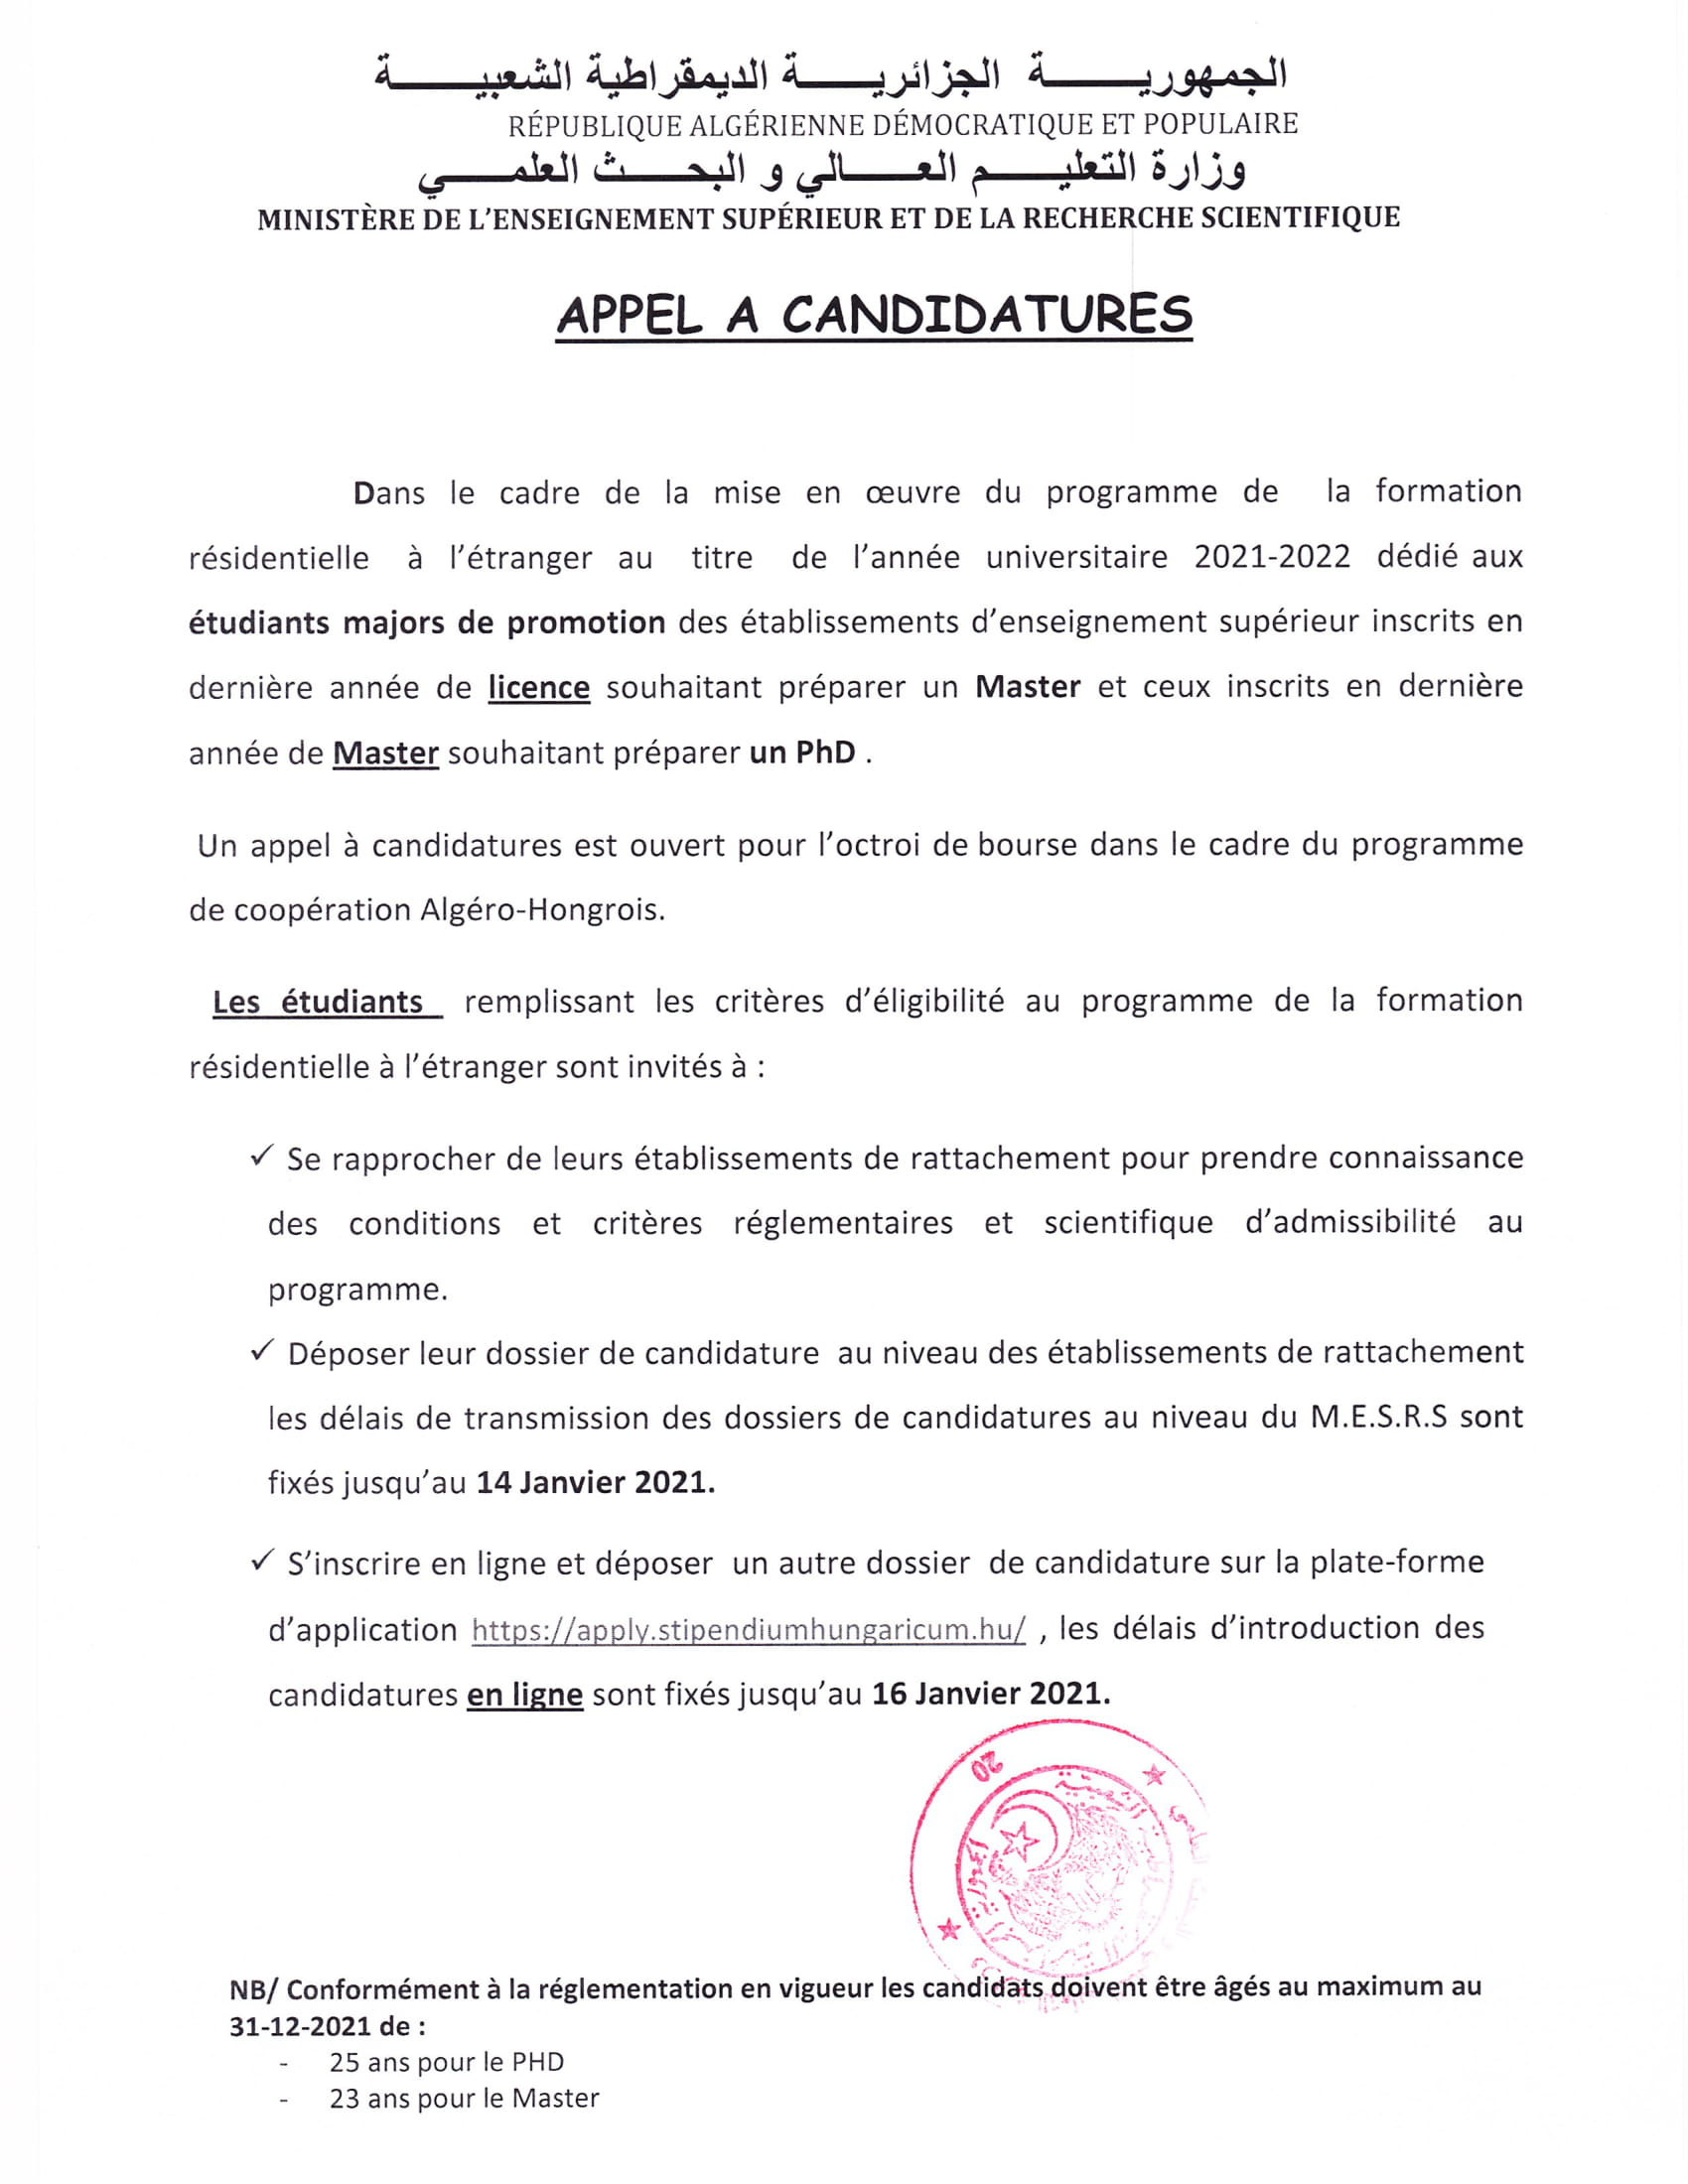 appel à candidature 2021 2022 1